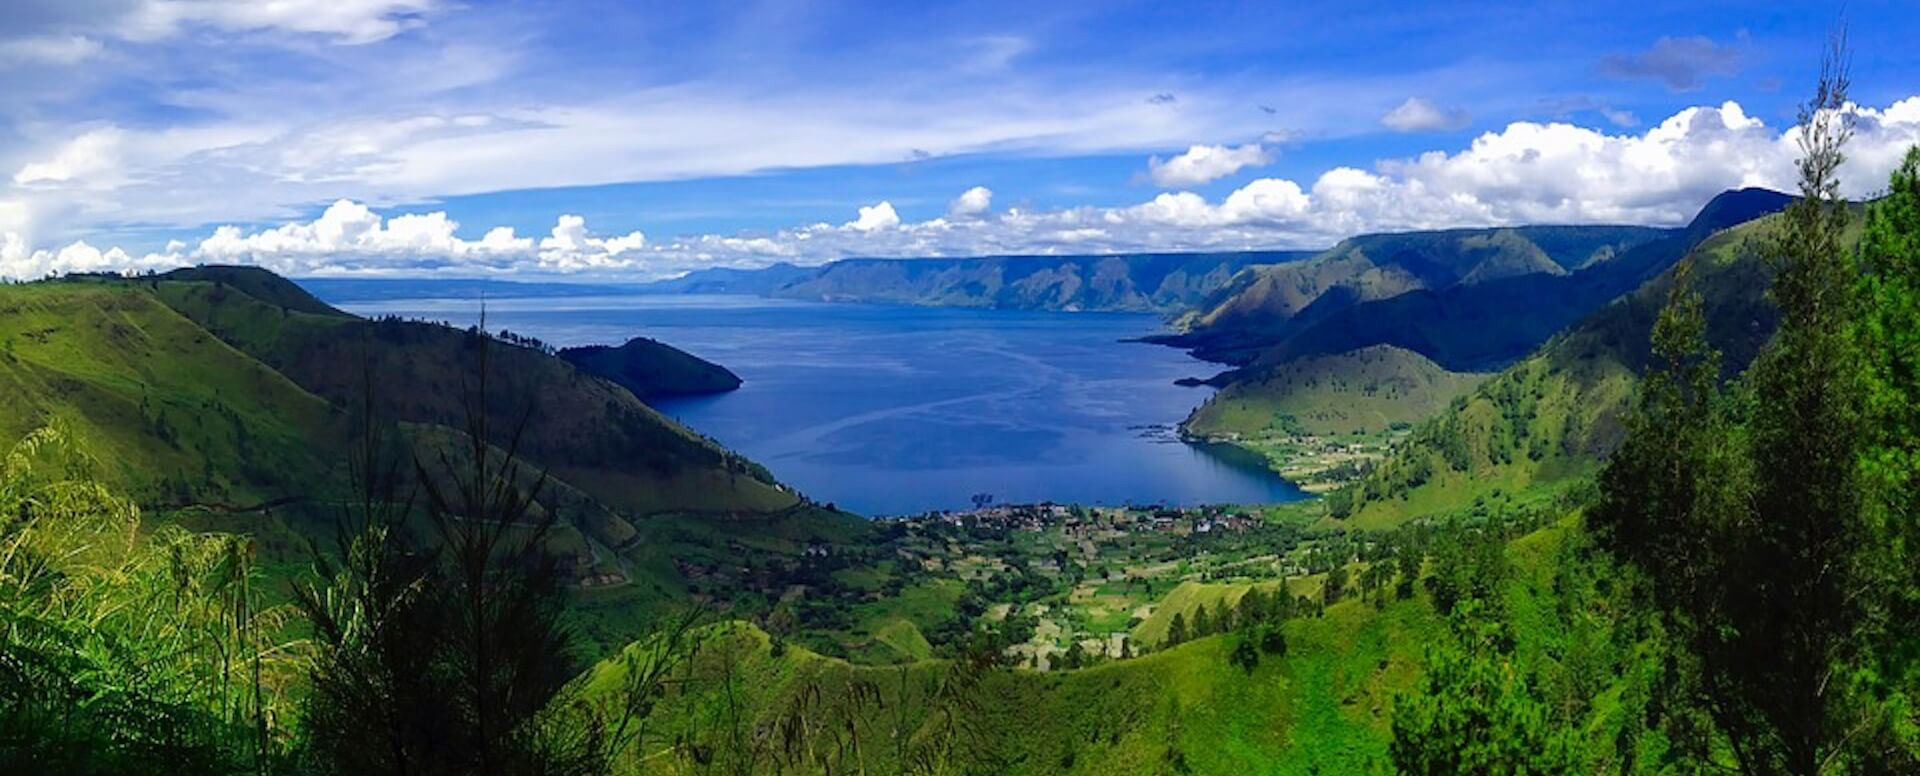 Grand lakes and rivers - Indonesia